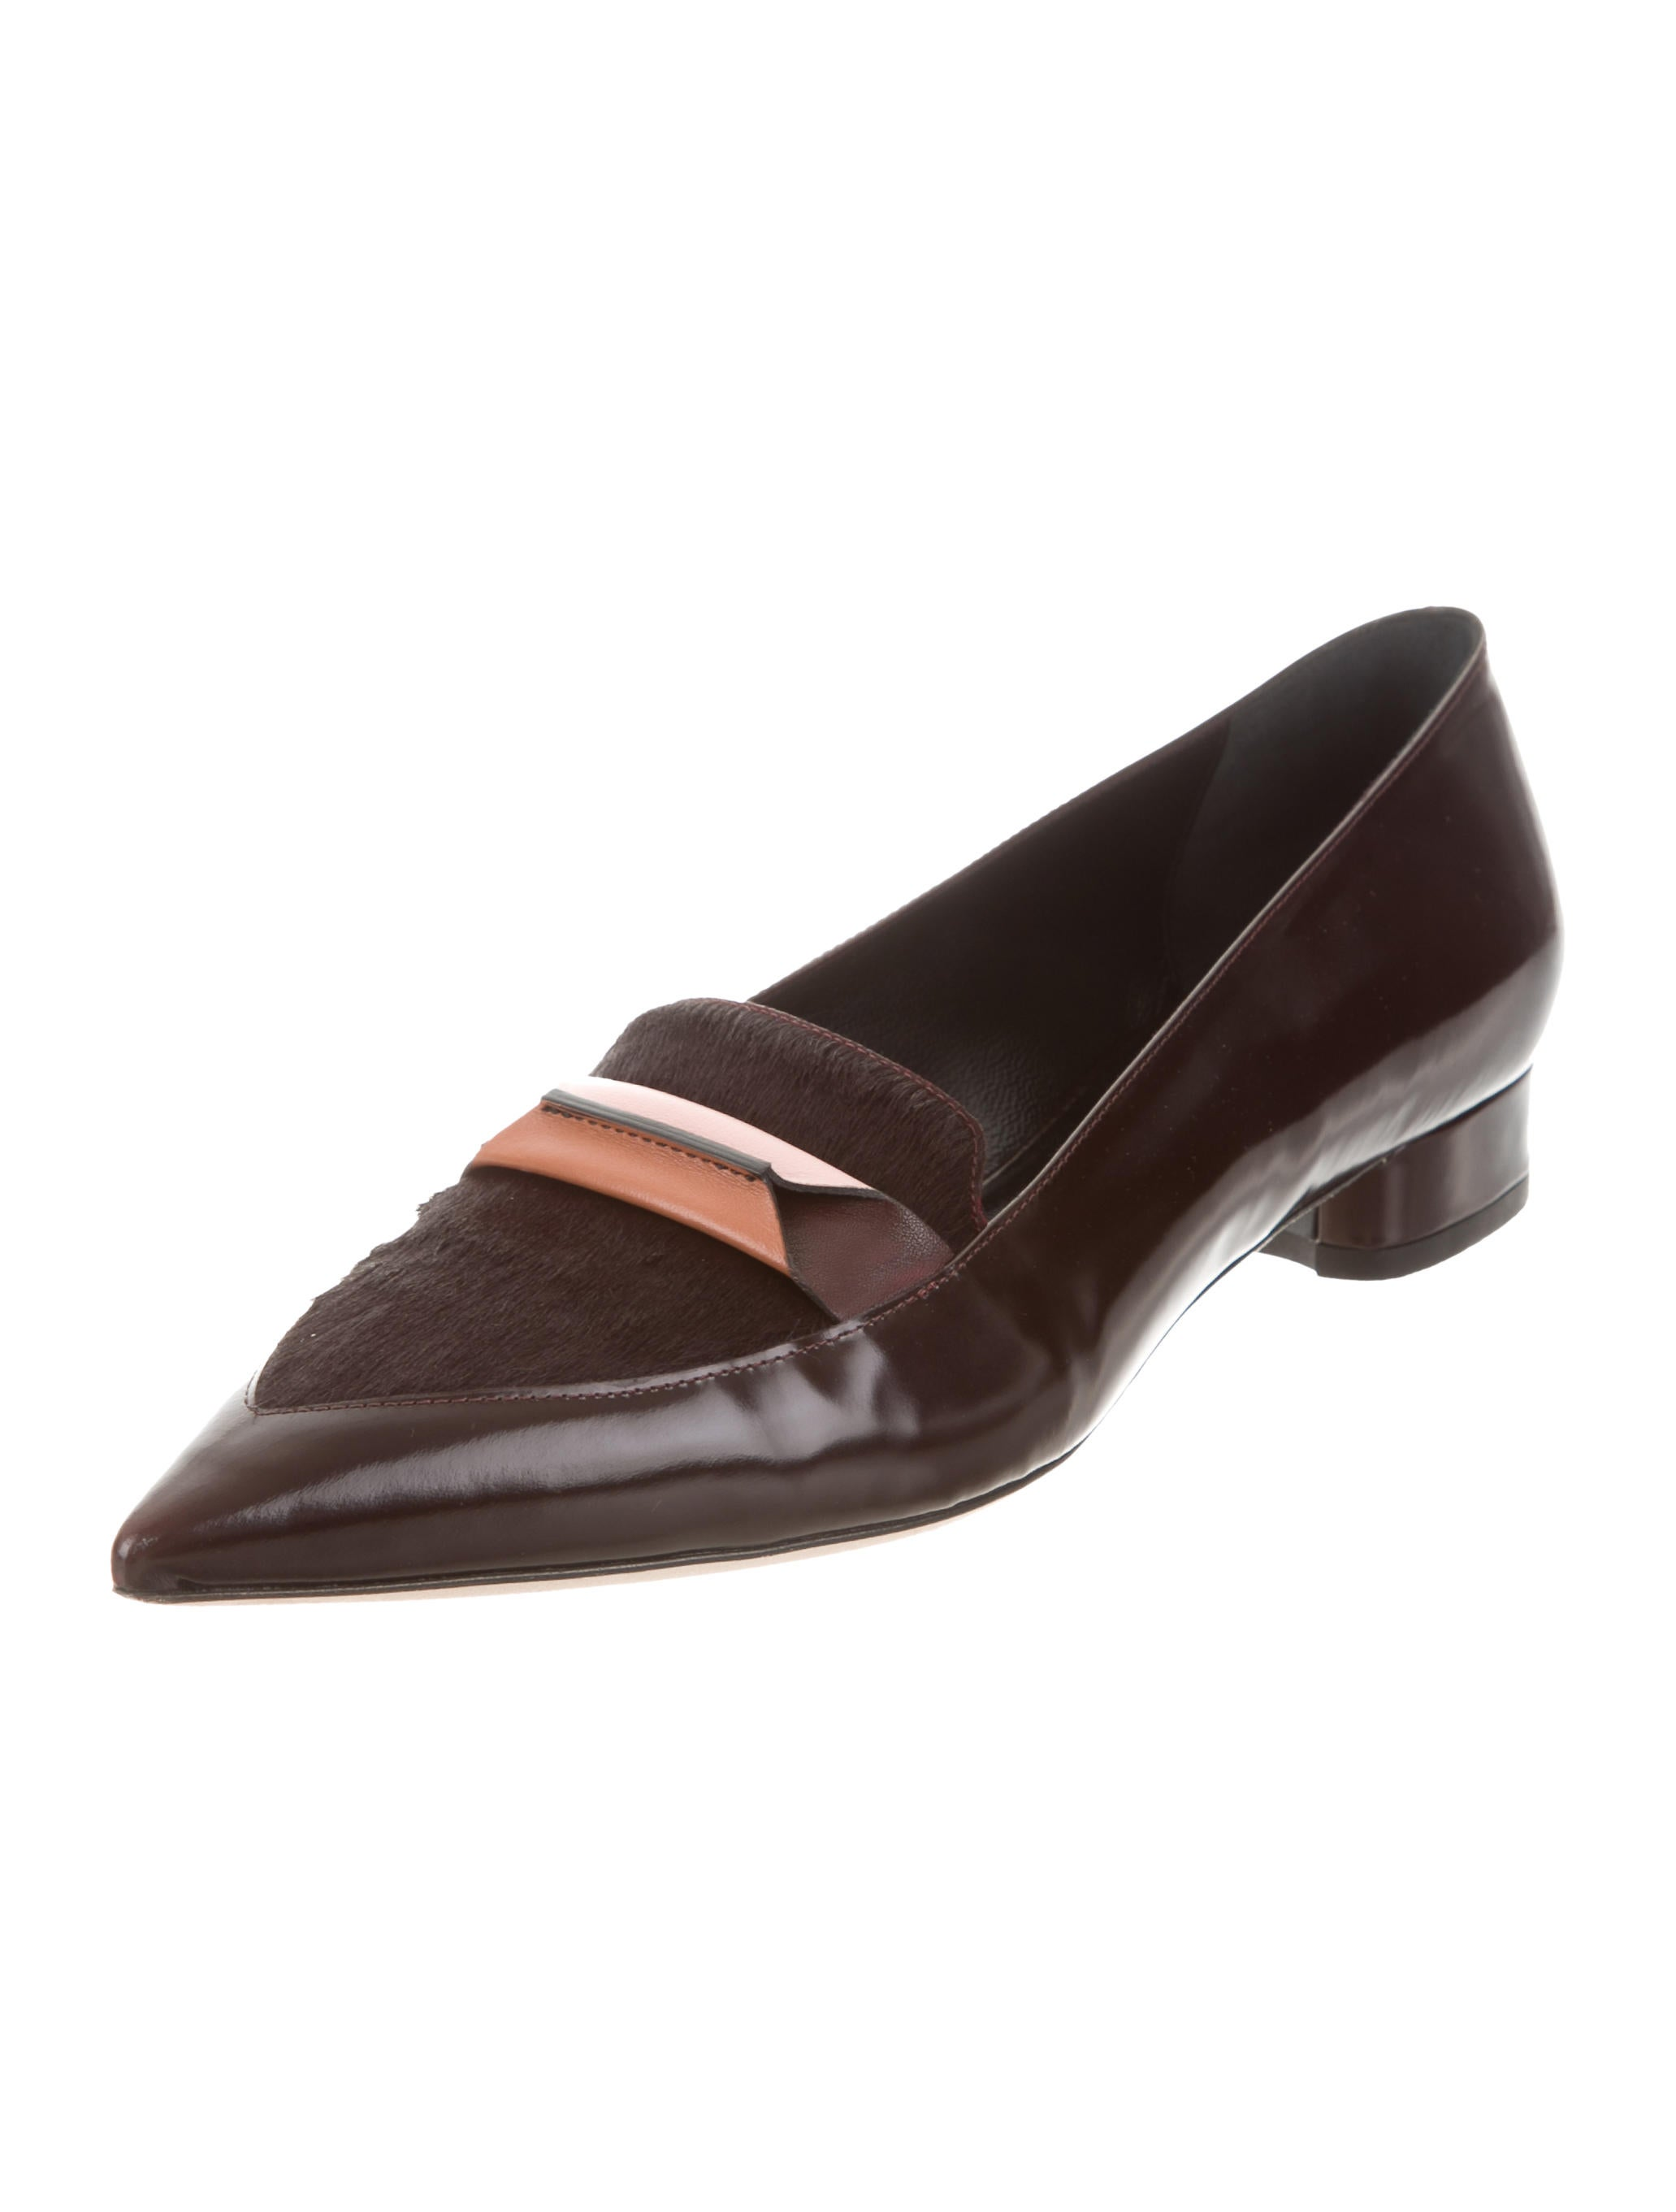 Paul Smith Pointed-Toe Ponyhair-Trimmed Flats cheap price discount authentic 1uJwV